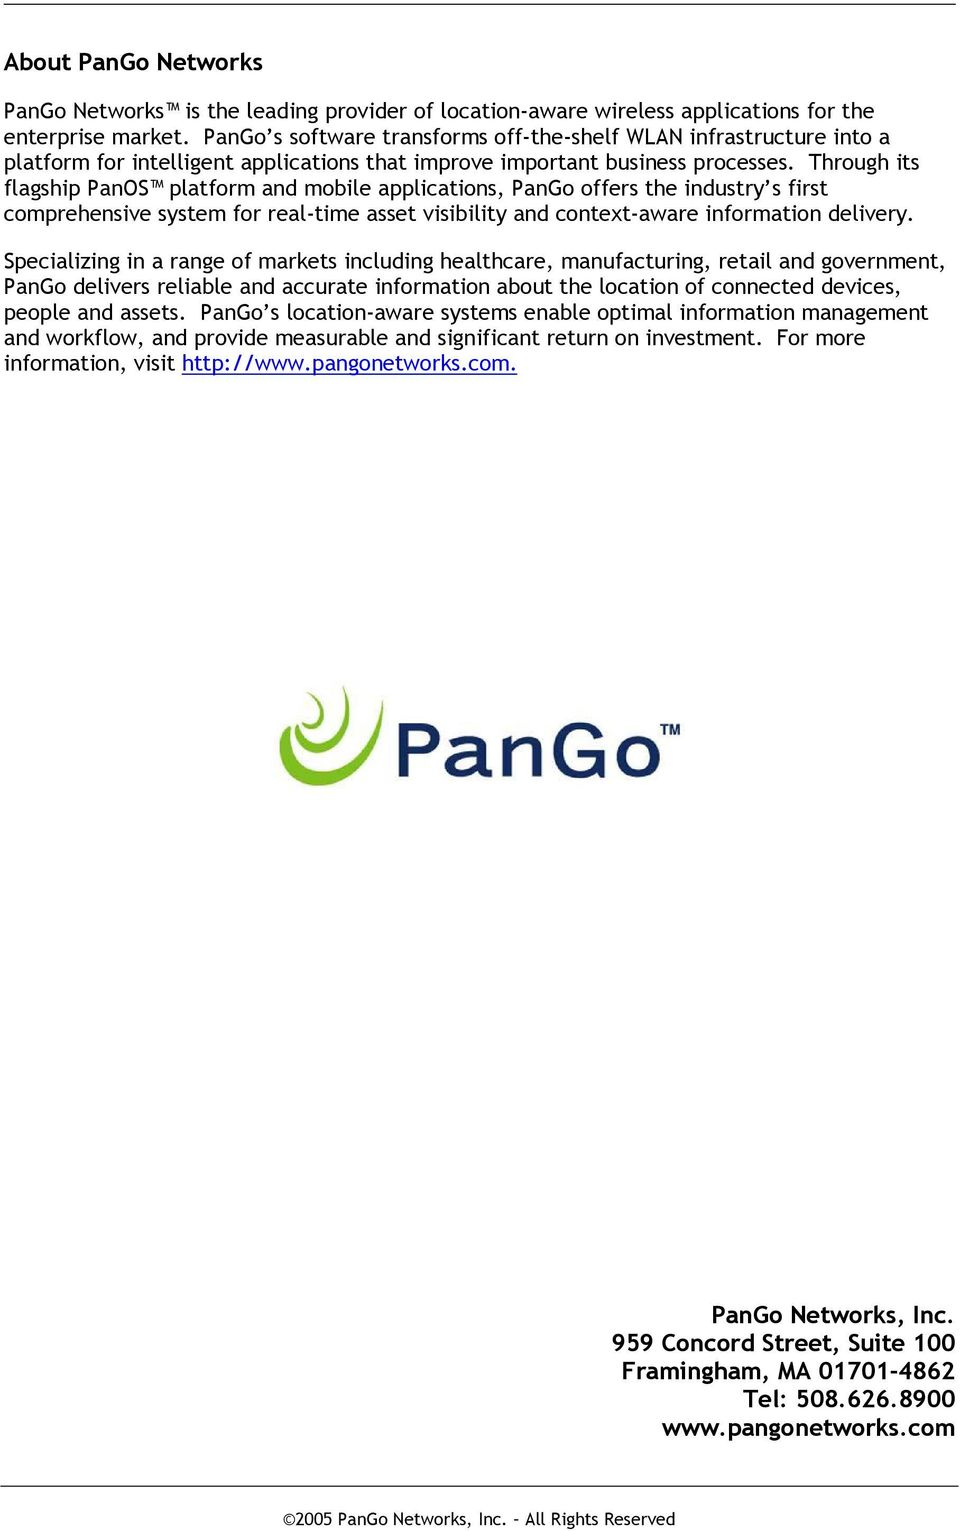 Through its flagship PanOS platform and mobile applications, PanGo offers the industry s first comprehensive system for real-time asset visibility and context-aware information delivery.